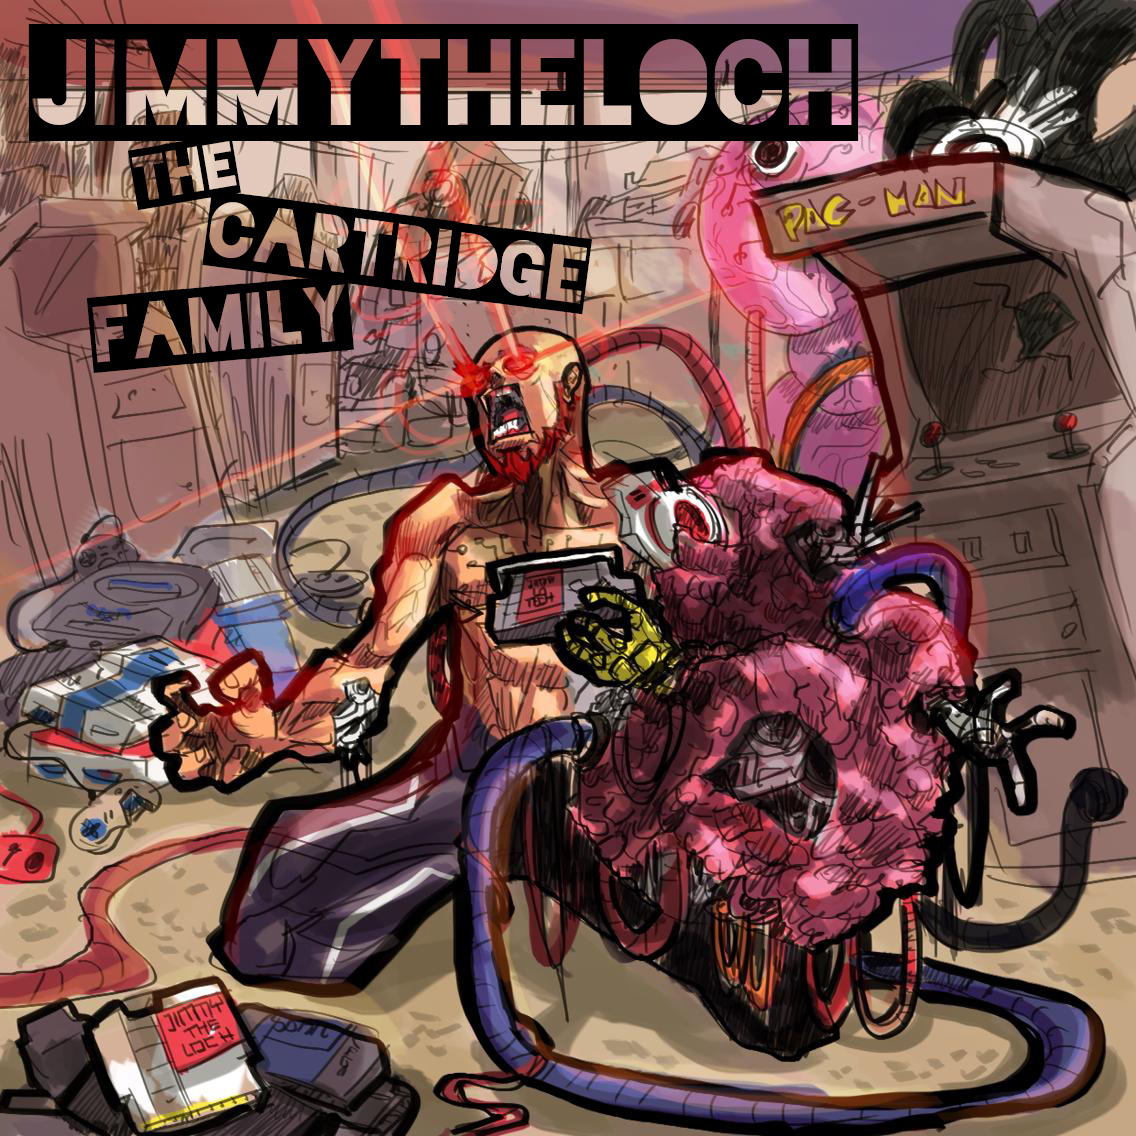 Jimmytheloch - The Cartridge Family